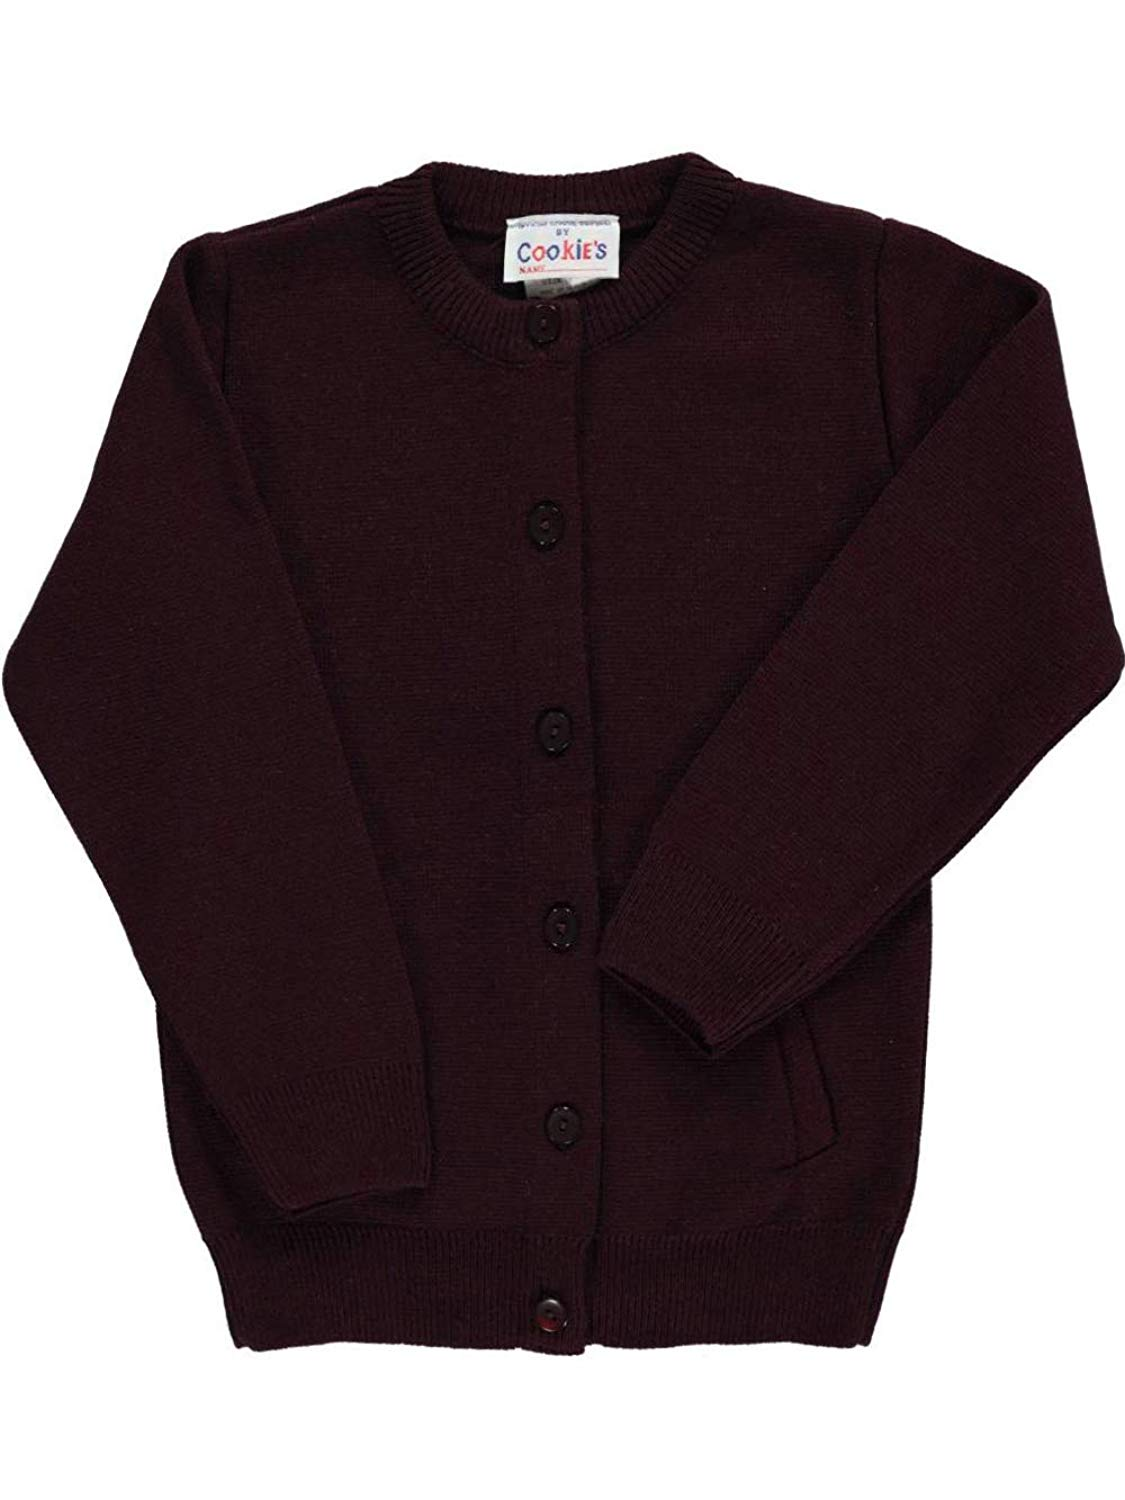 Dempsey Marie Classy Girls Sweater or Cardigan Perfect For any Occasion Black Brown Burgundy